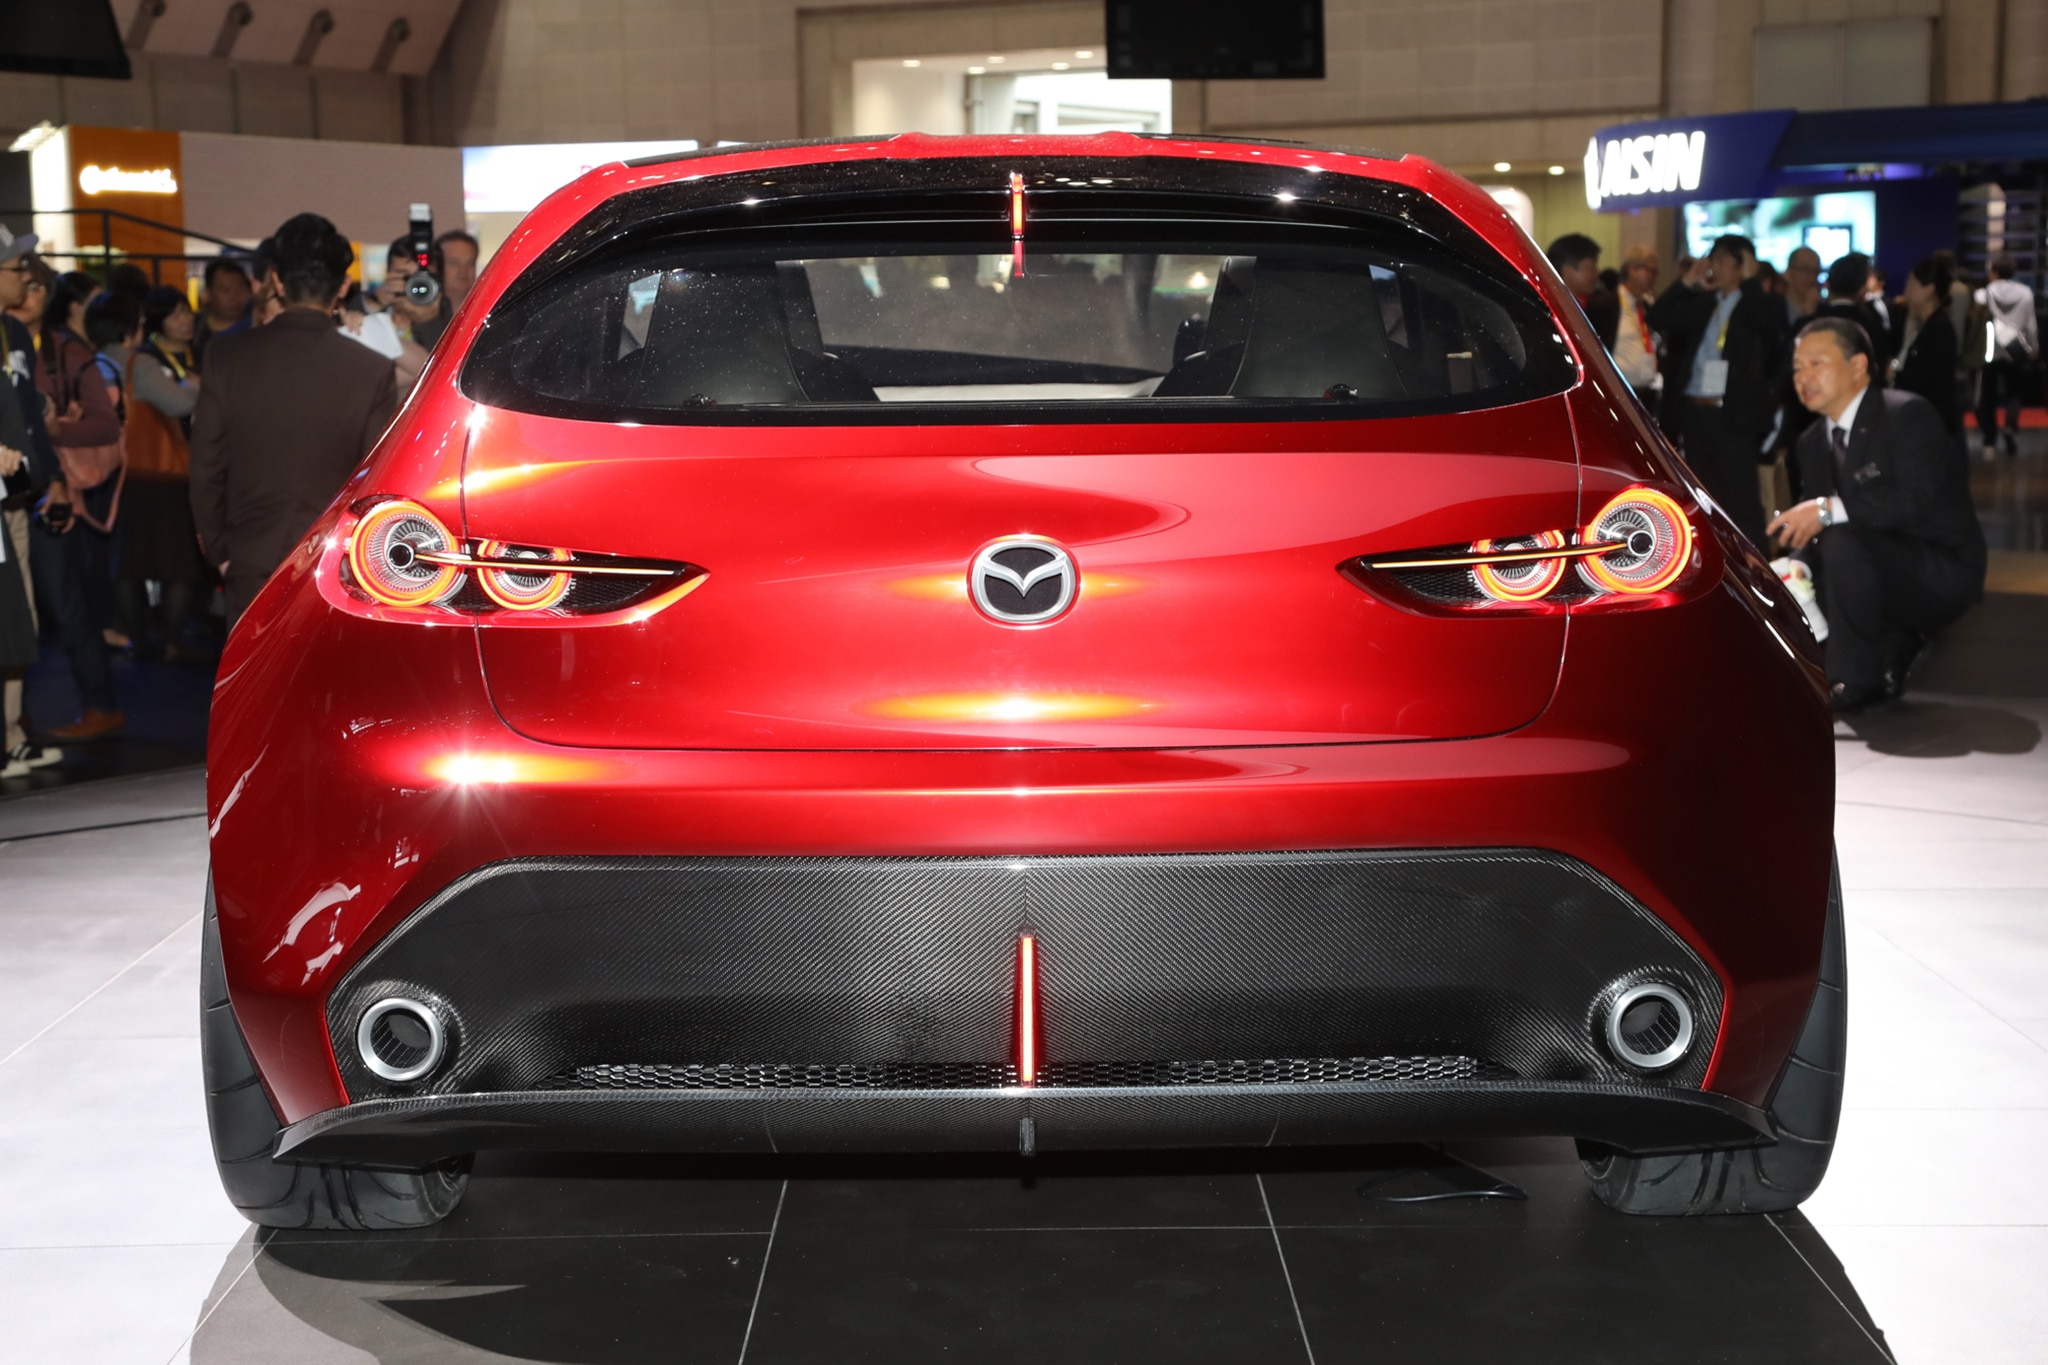 Five Things You Need To Know About The Mazda Kai Concept